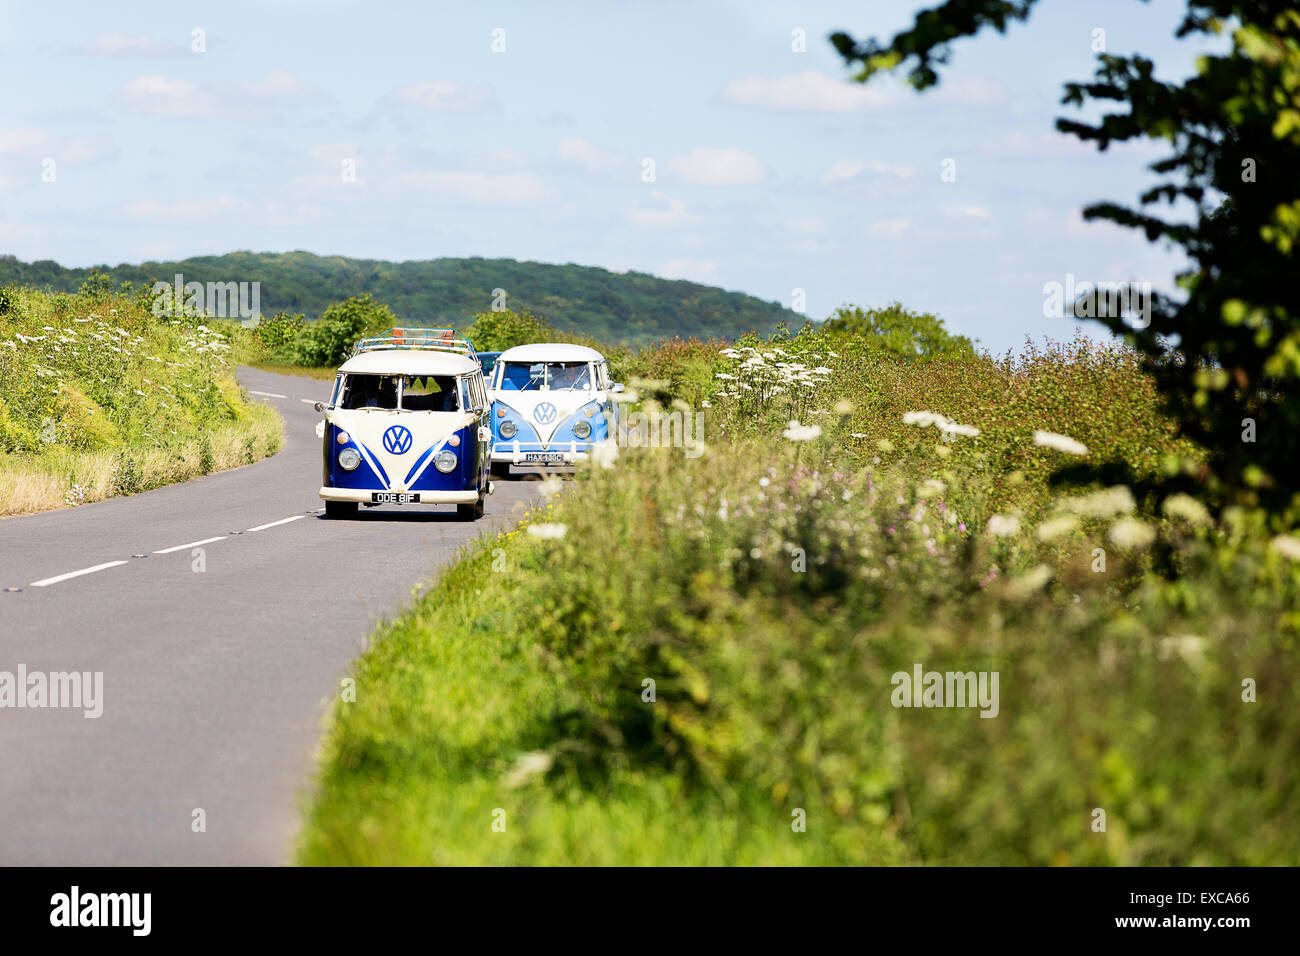 Two old classic 1960's VW Camper vans driving through the english summer country side countryside in convoy - Stock Image